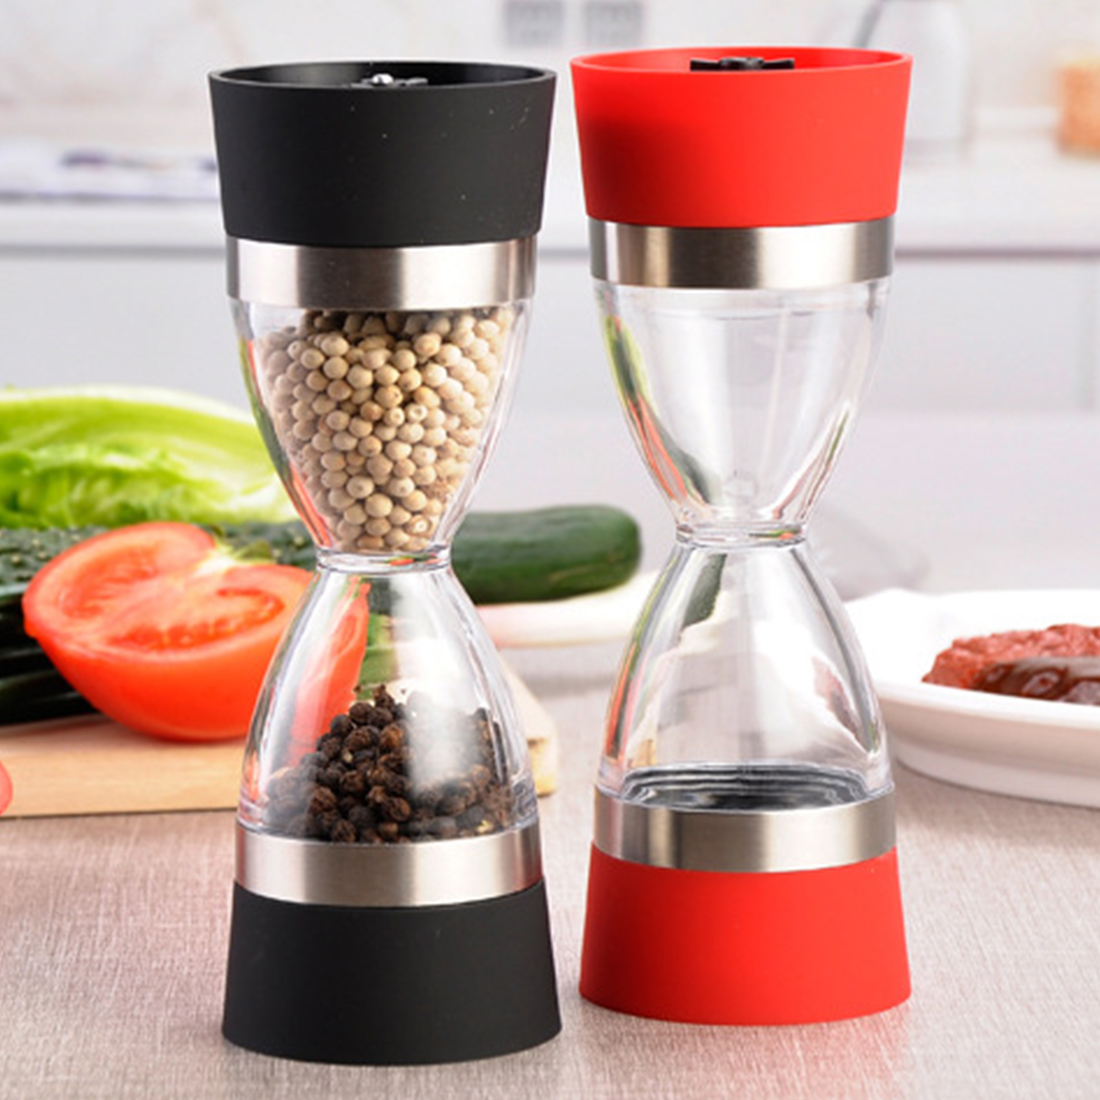 New 18cm Dual Grind 2 In 1 Stainless Steel Ceramic core Pepper Salt Spice Seasonings Circle Grinder Mill Coarse To Fine Grain moulin à sel et poivre